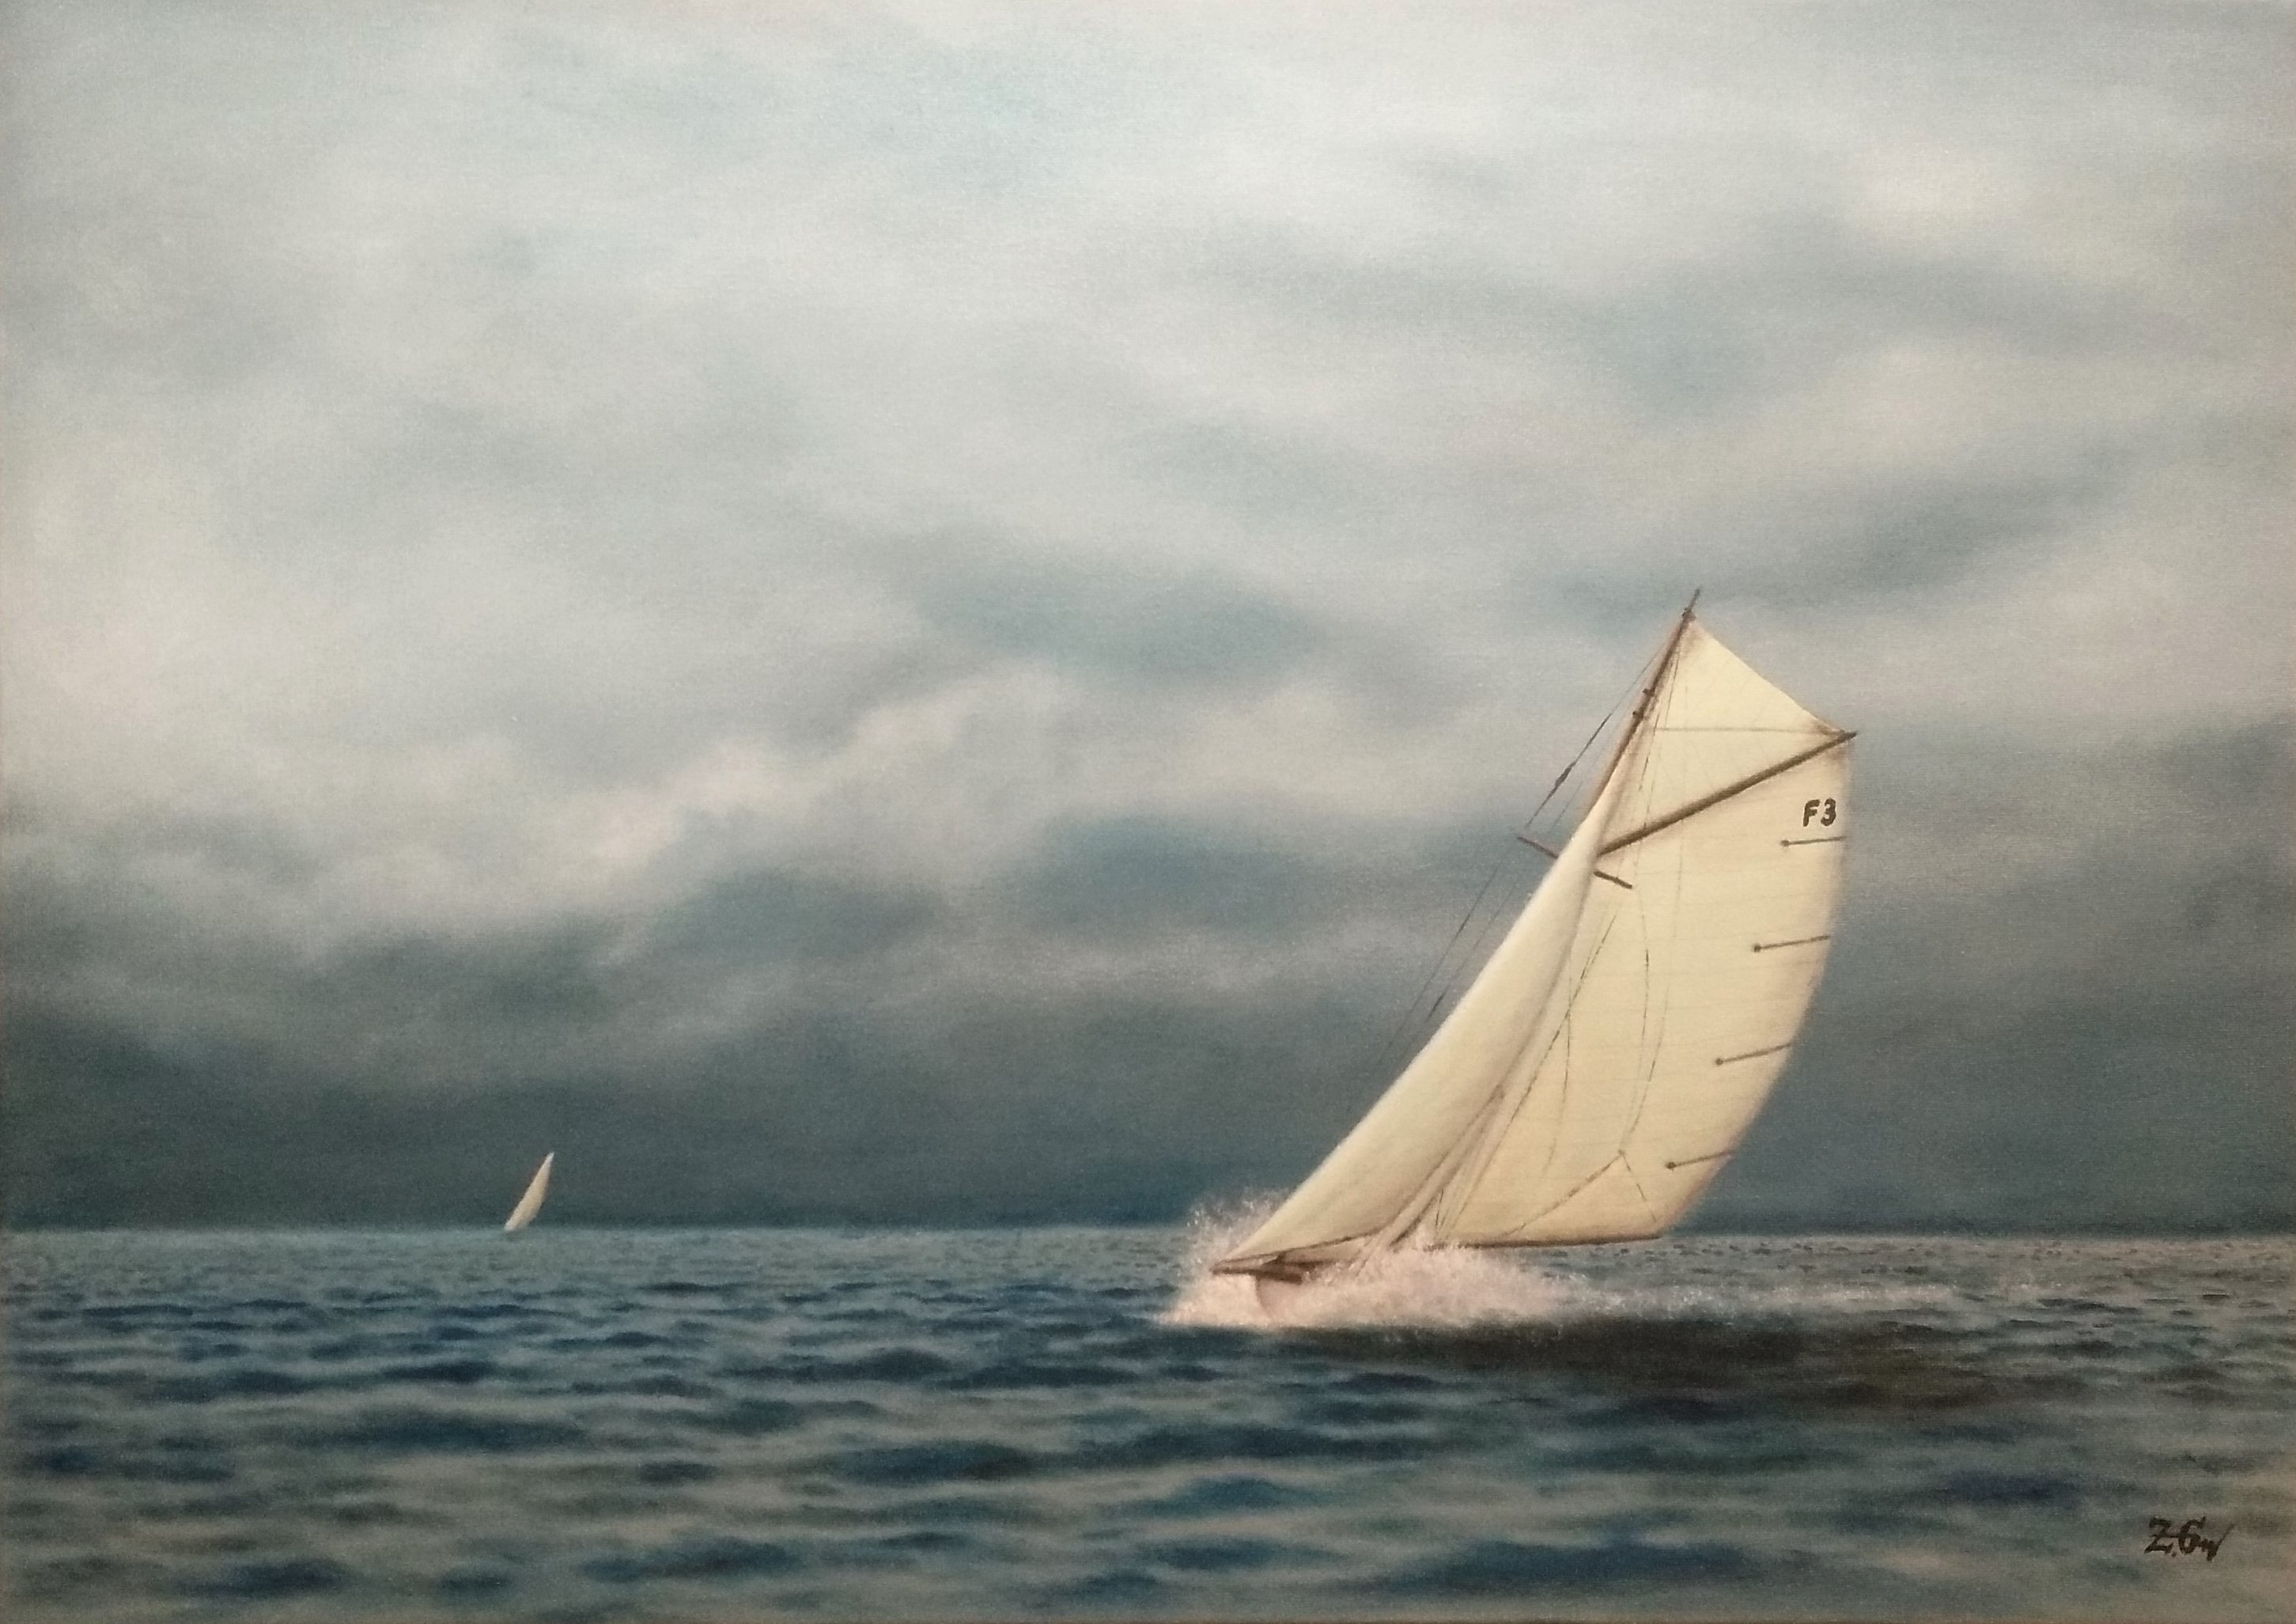 ''Vintage yacht in action N.2.''